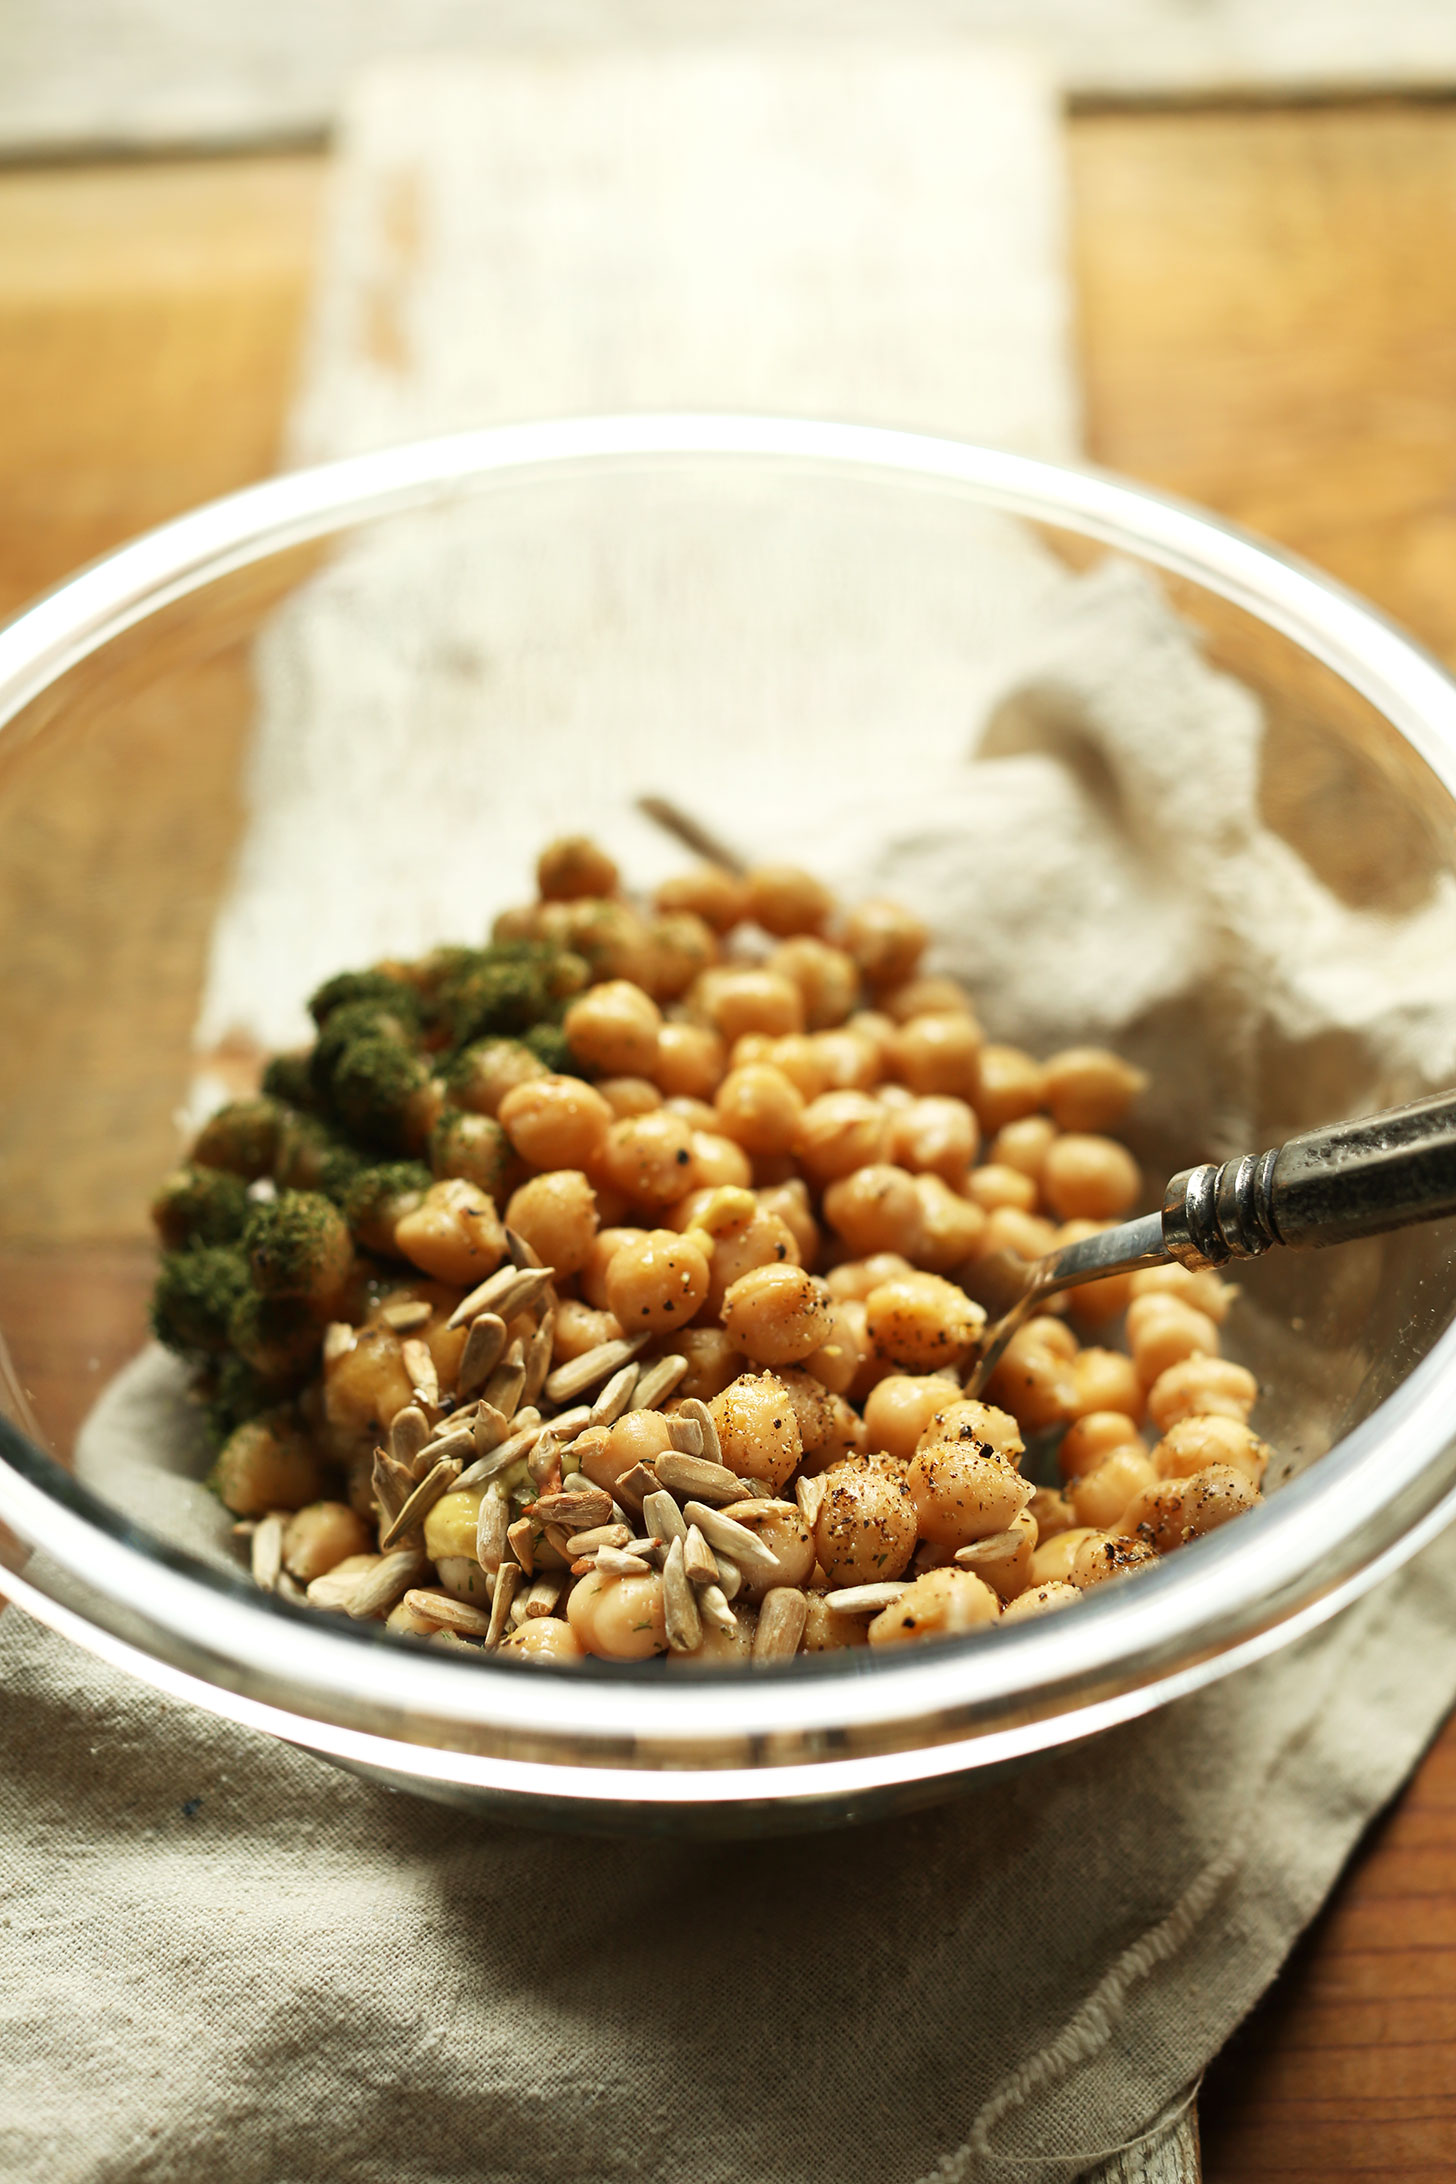 Stirring together chickpeas, sunflower seeds, and dill to make a vegan whole meal salad